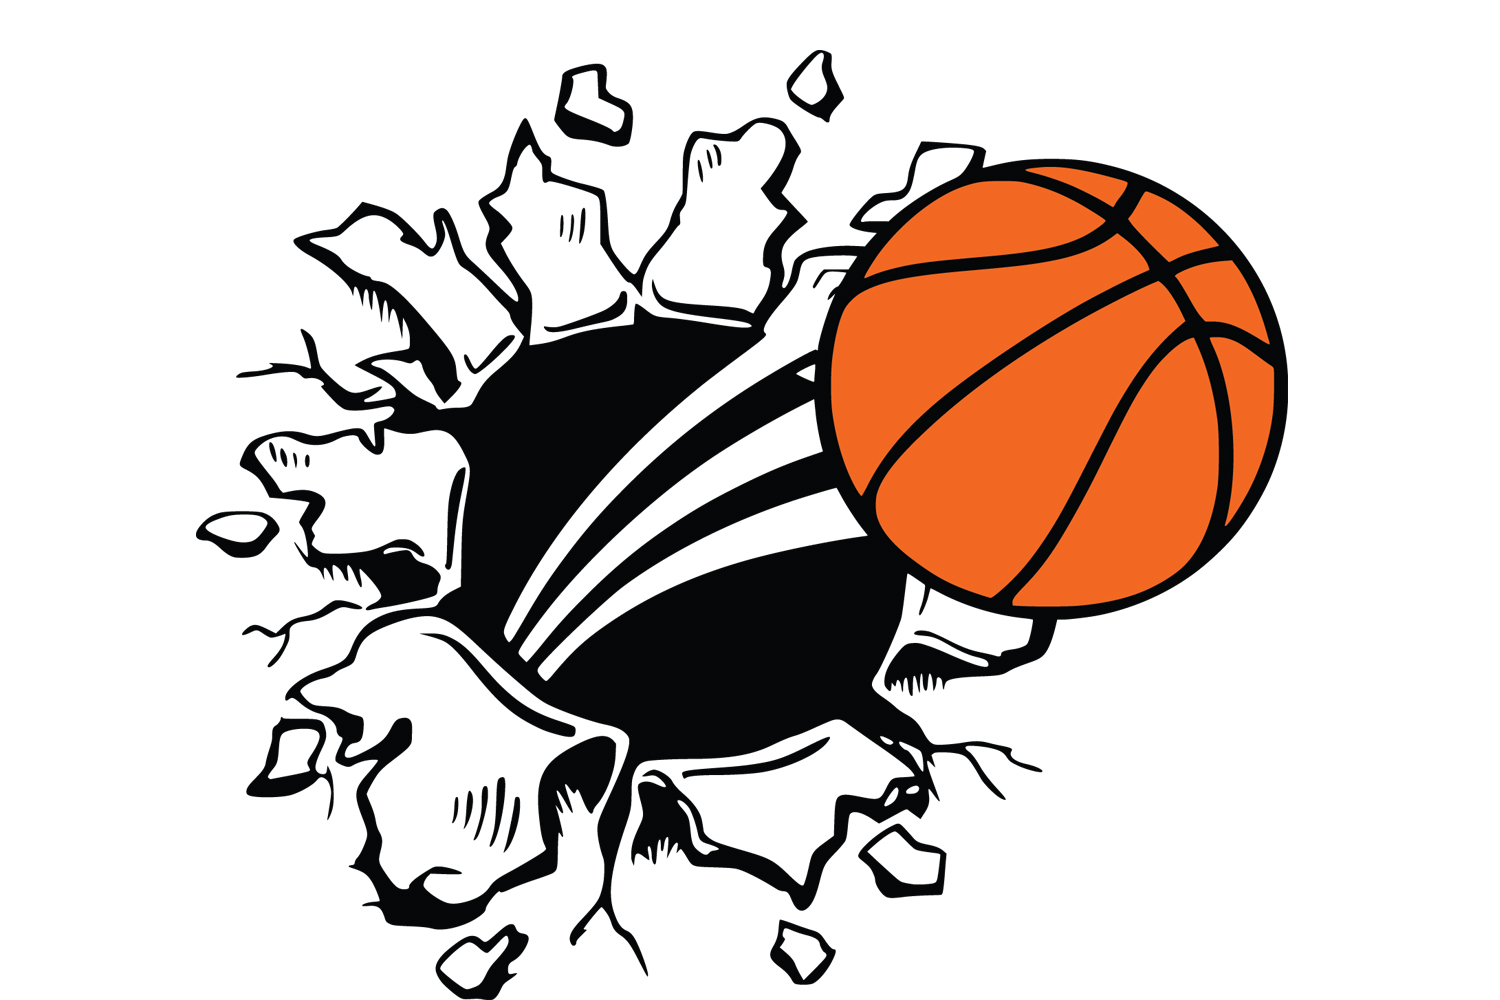 Basketball svg clipart graphic free basketball svg, basketball clipart, basketball vector, SVG graphic free